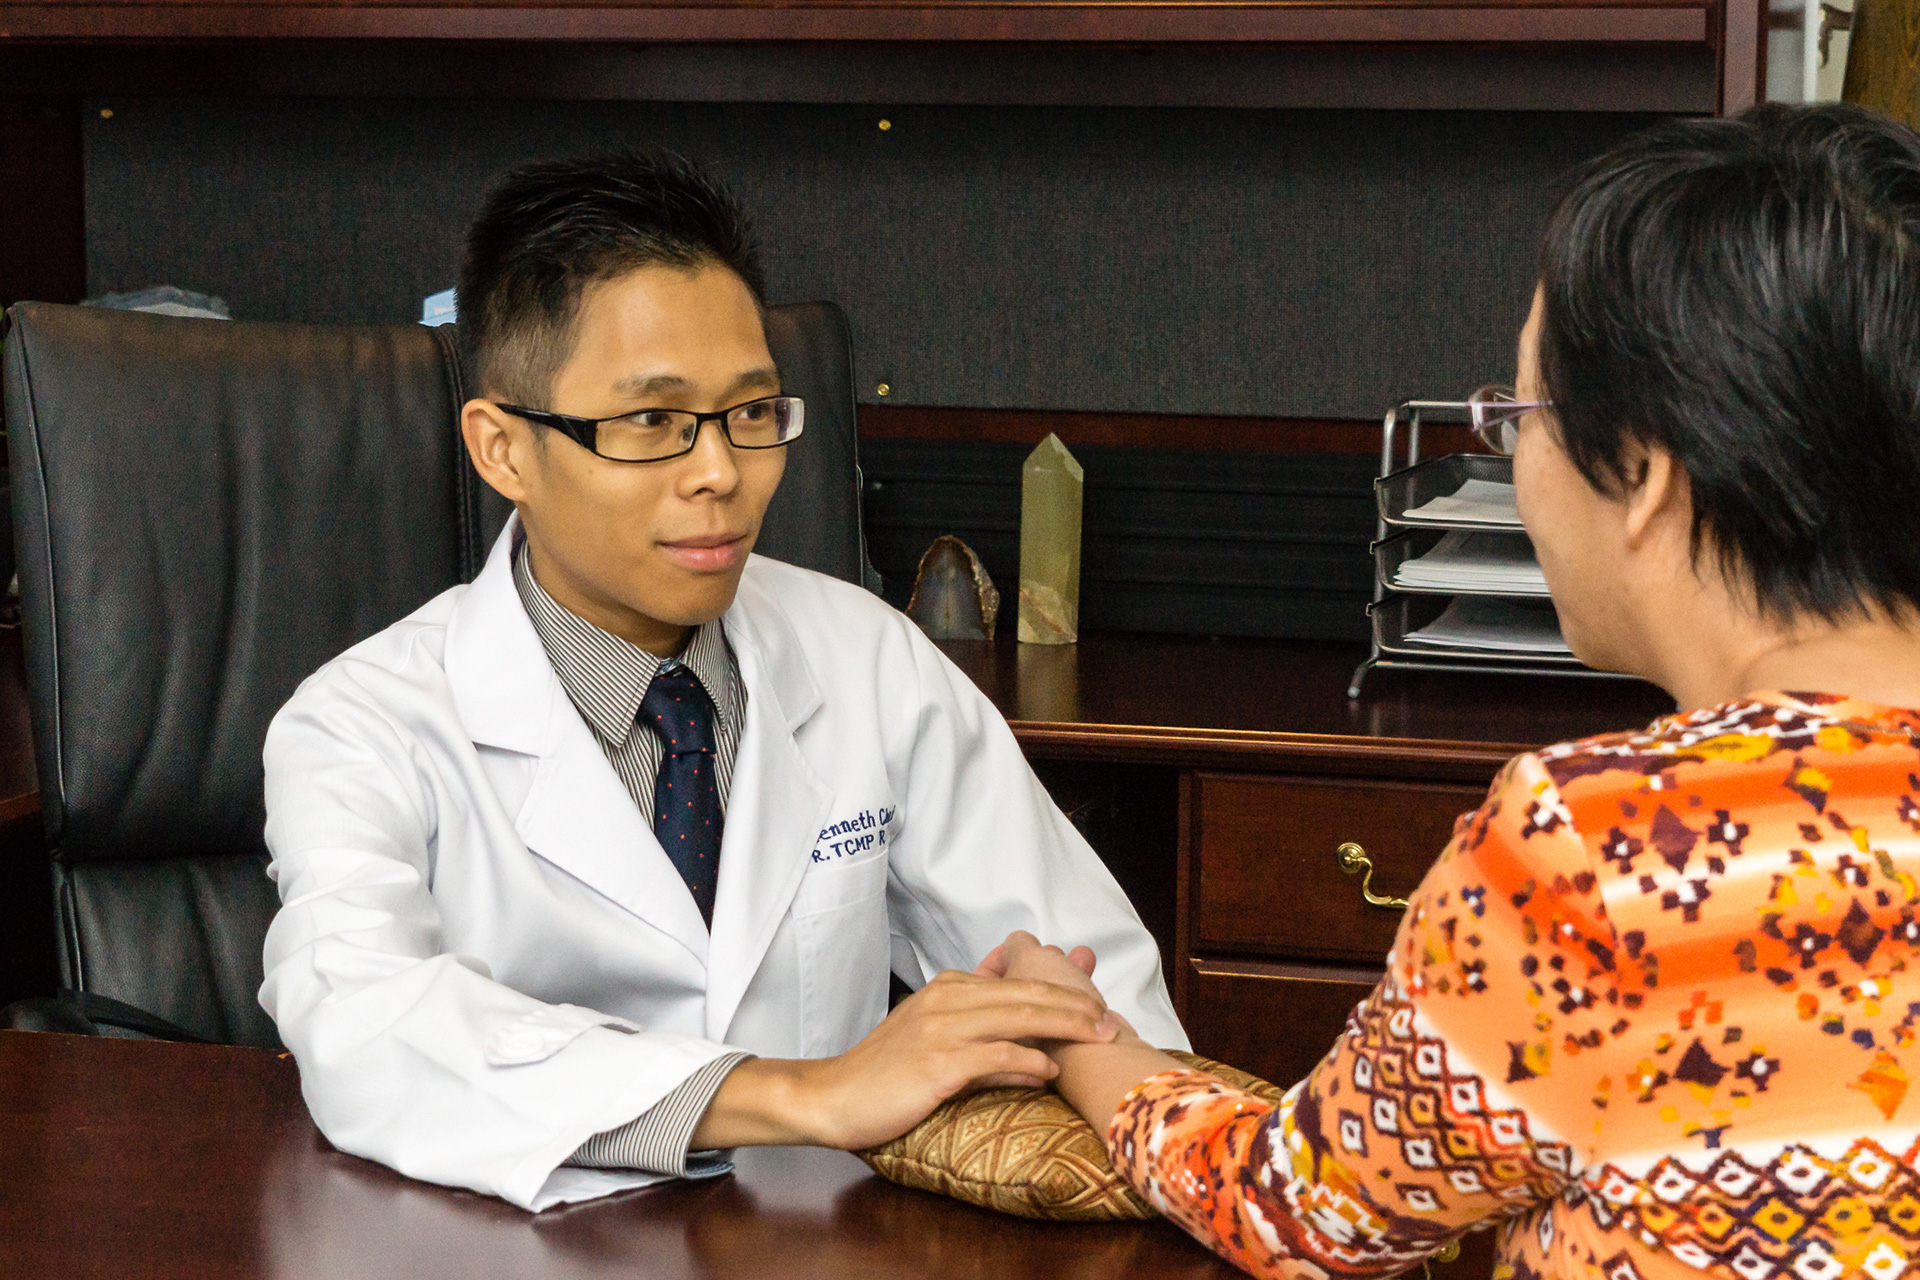 Acupuncturist Kenneth Choi examines a patient and provides advice